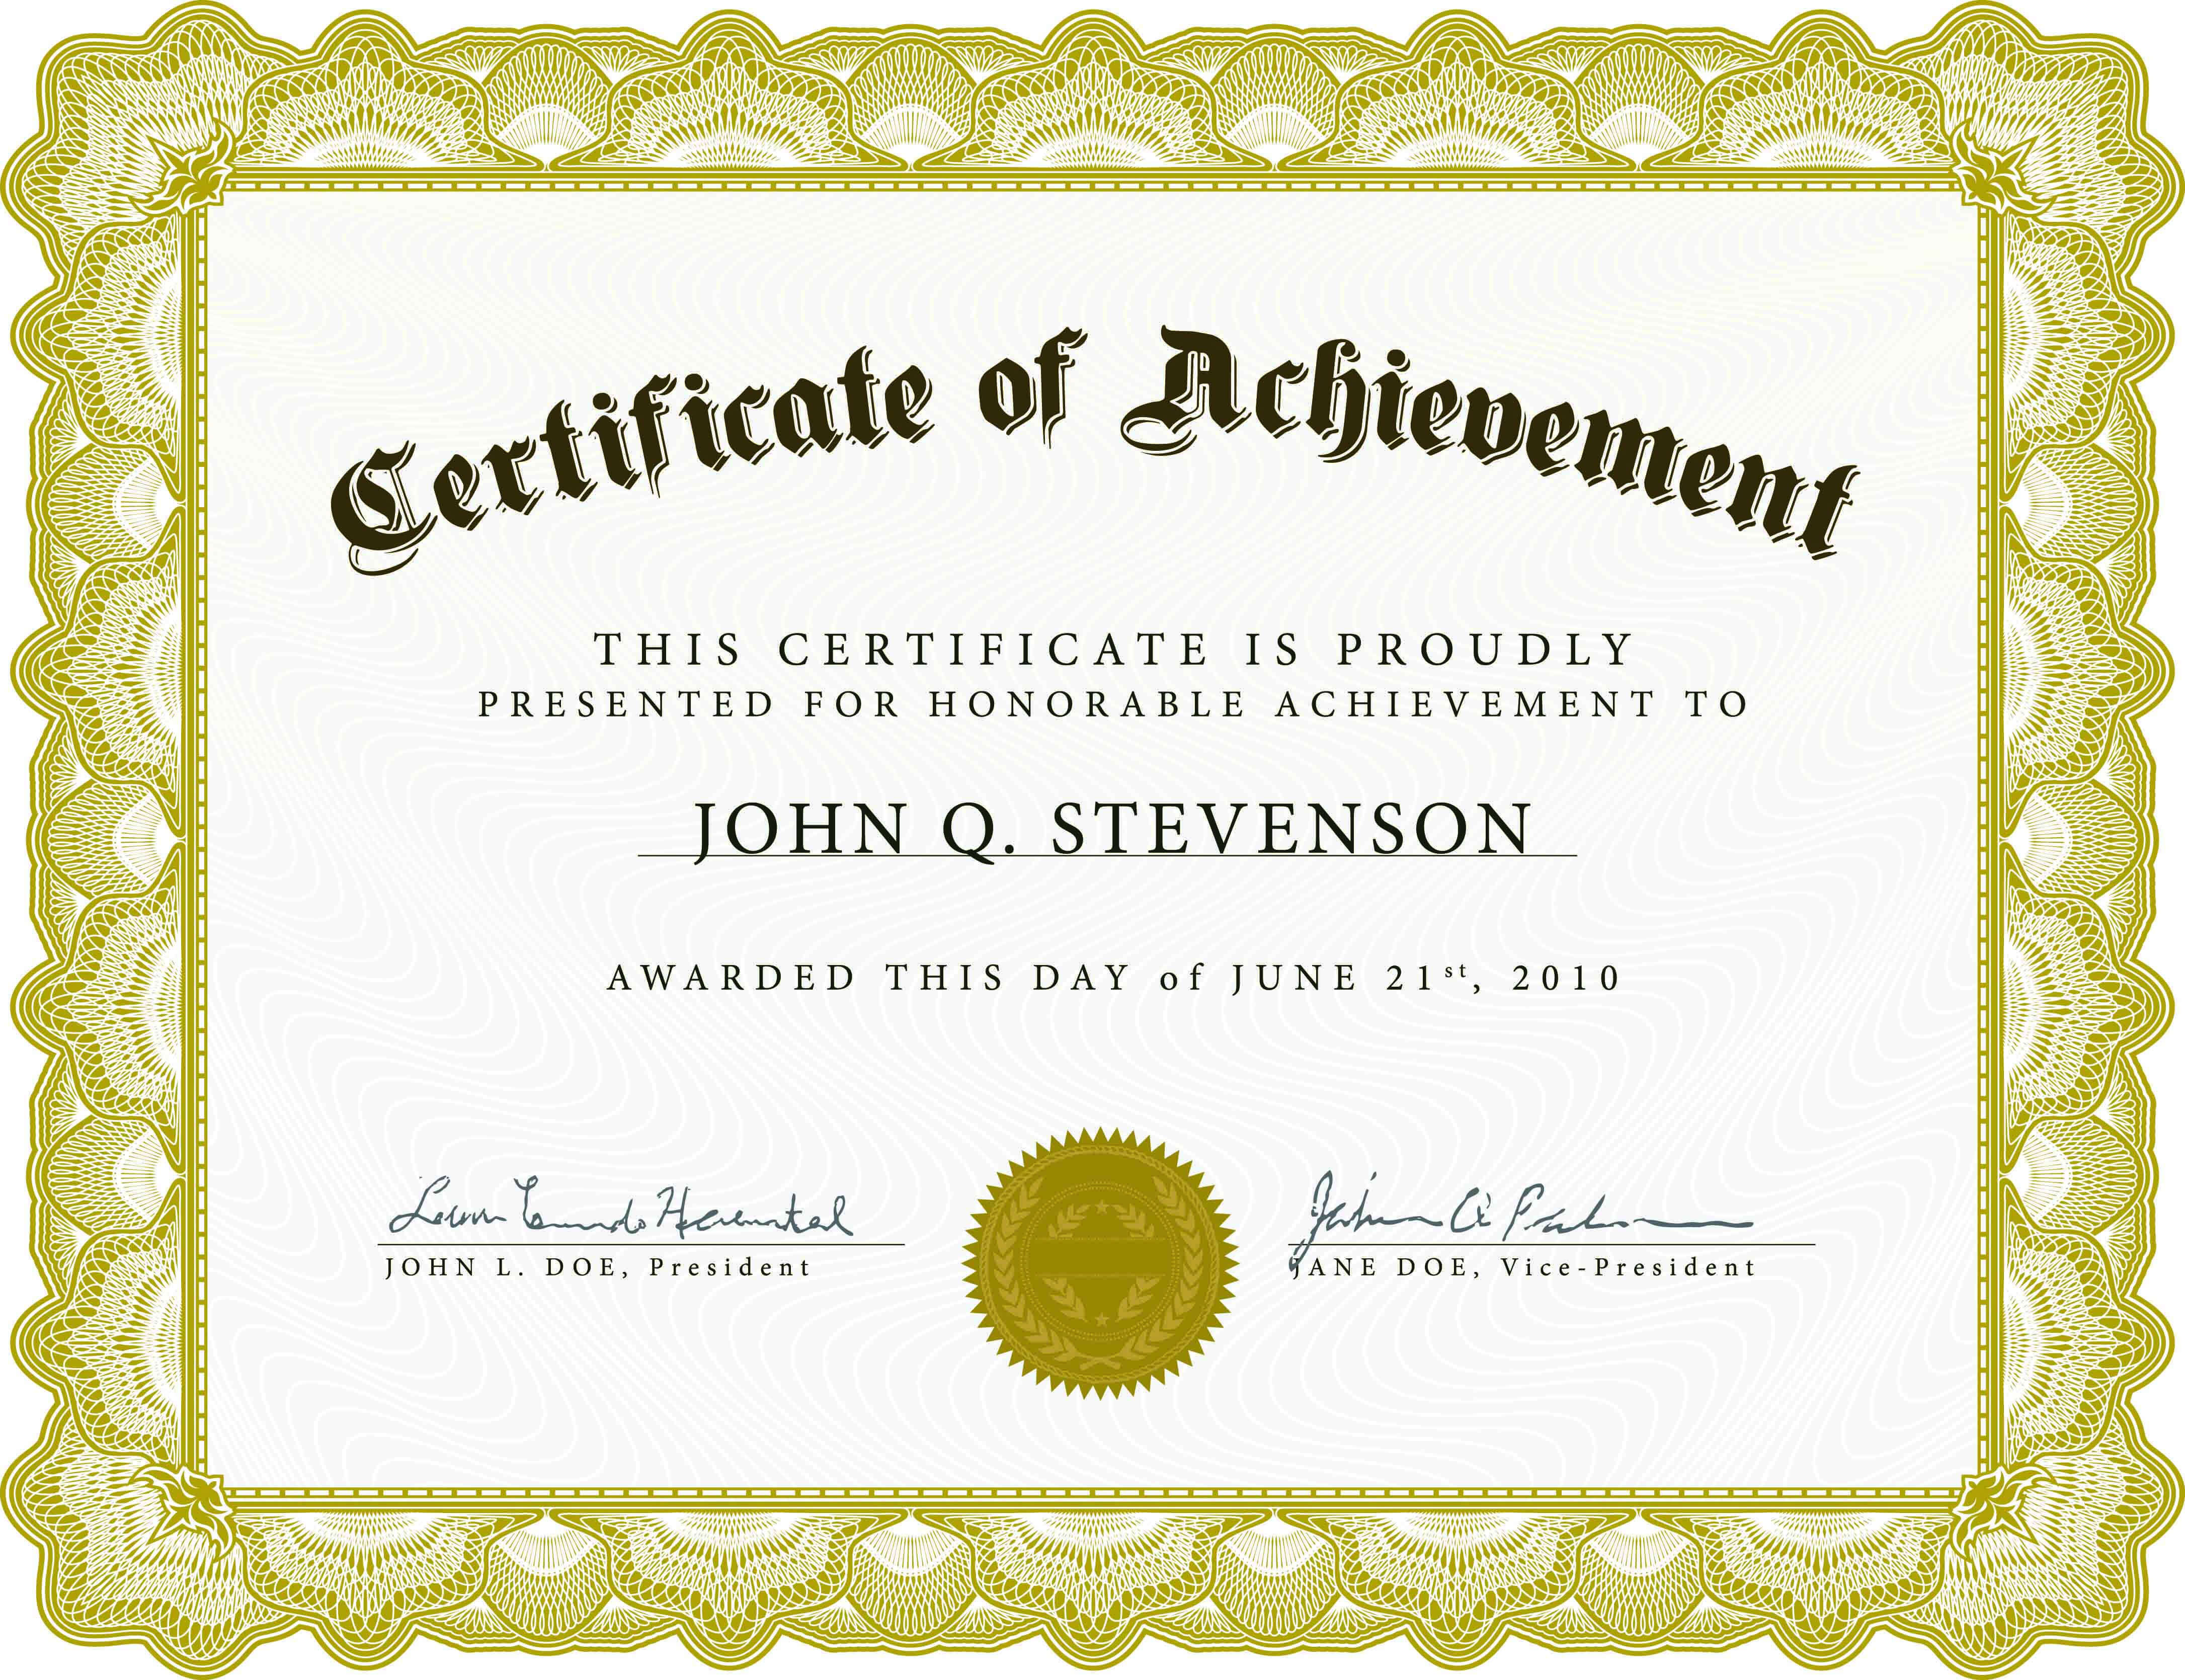 Certificate Of Academic Achievement Template | Photo Stock Pertaining To Anniversary Certificate Template Free